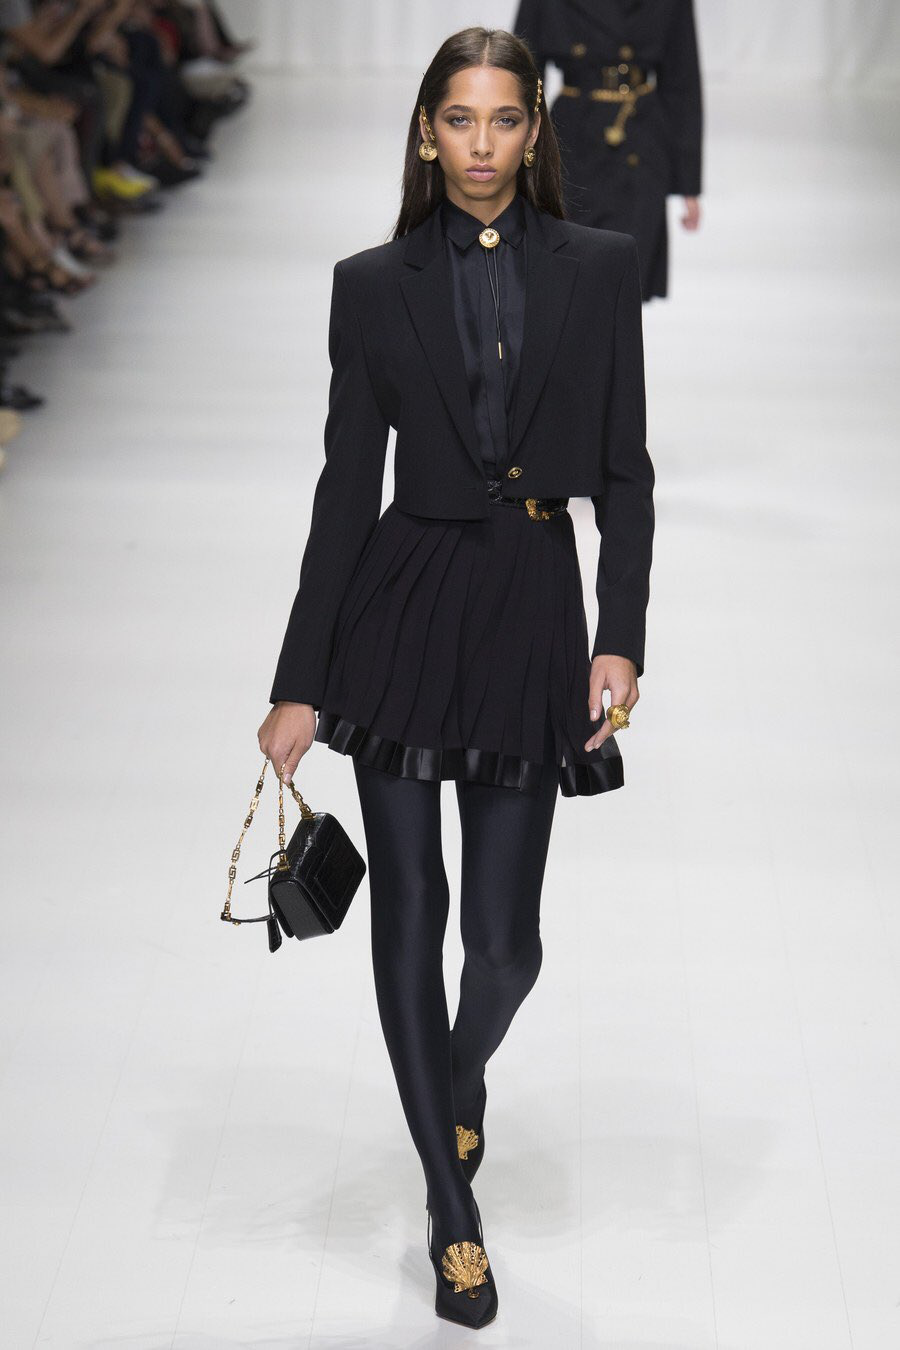 women's bolo tie / black suit / gold accents / black blazer / black skirt /  womens loafers / See the complete Versace Spring 2018 Ready-to-Wear  collection.